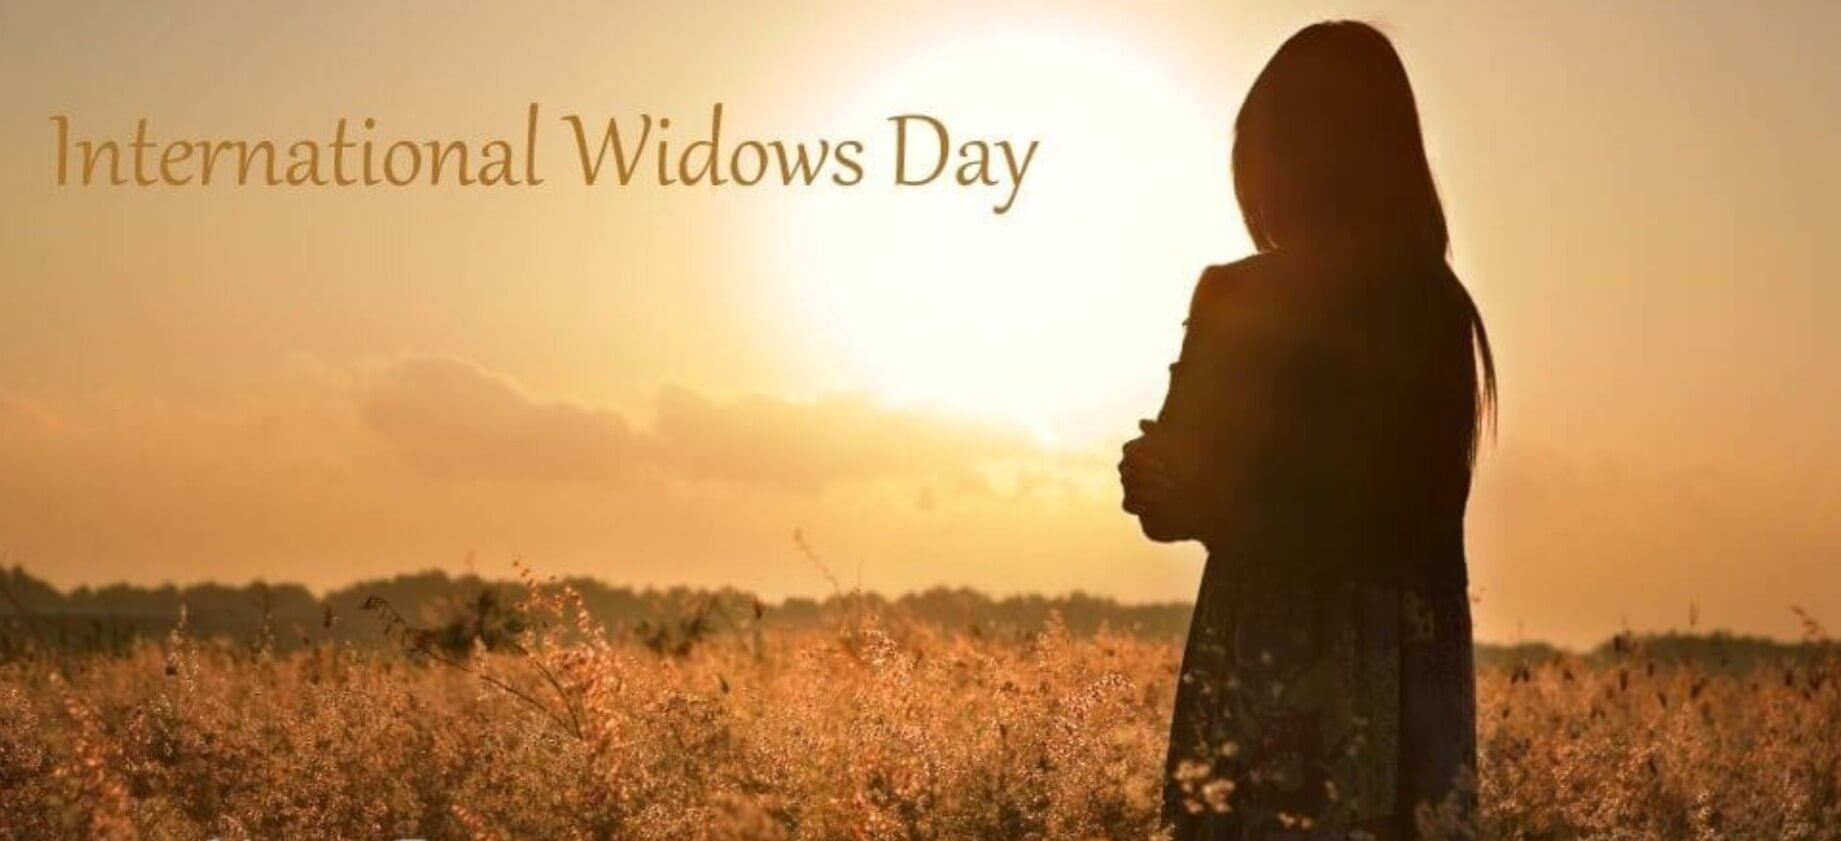 Tirap celebrates International Widows Day